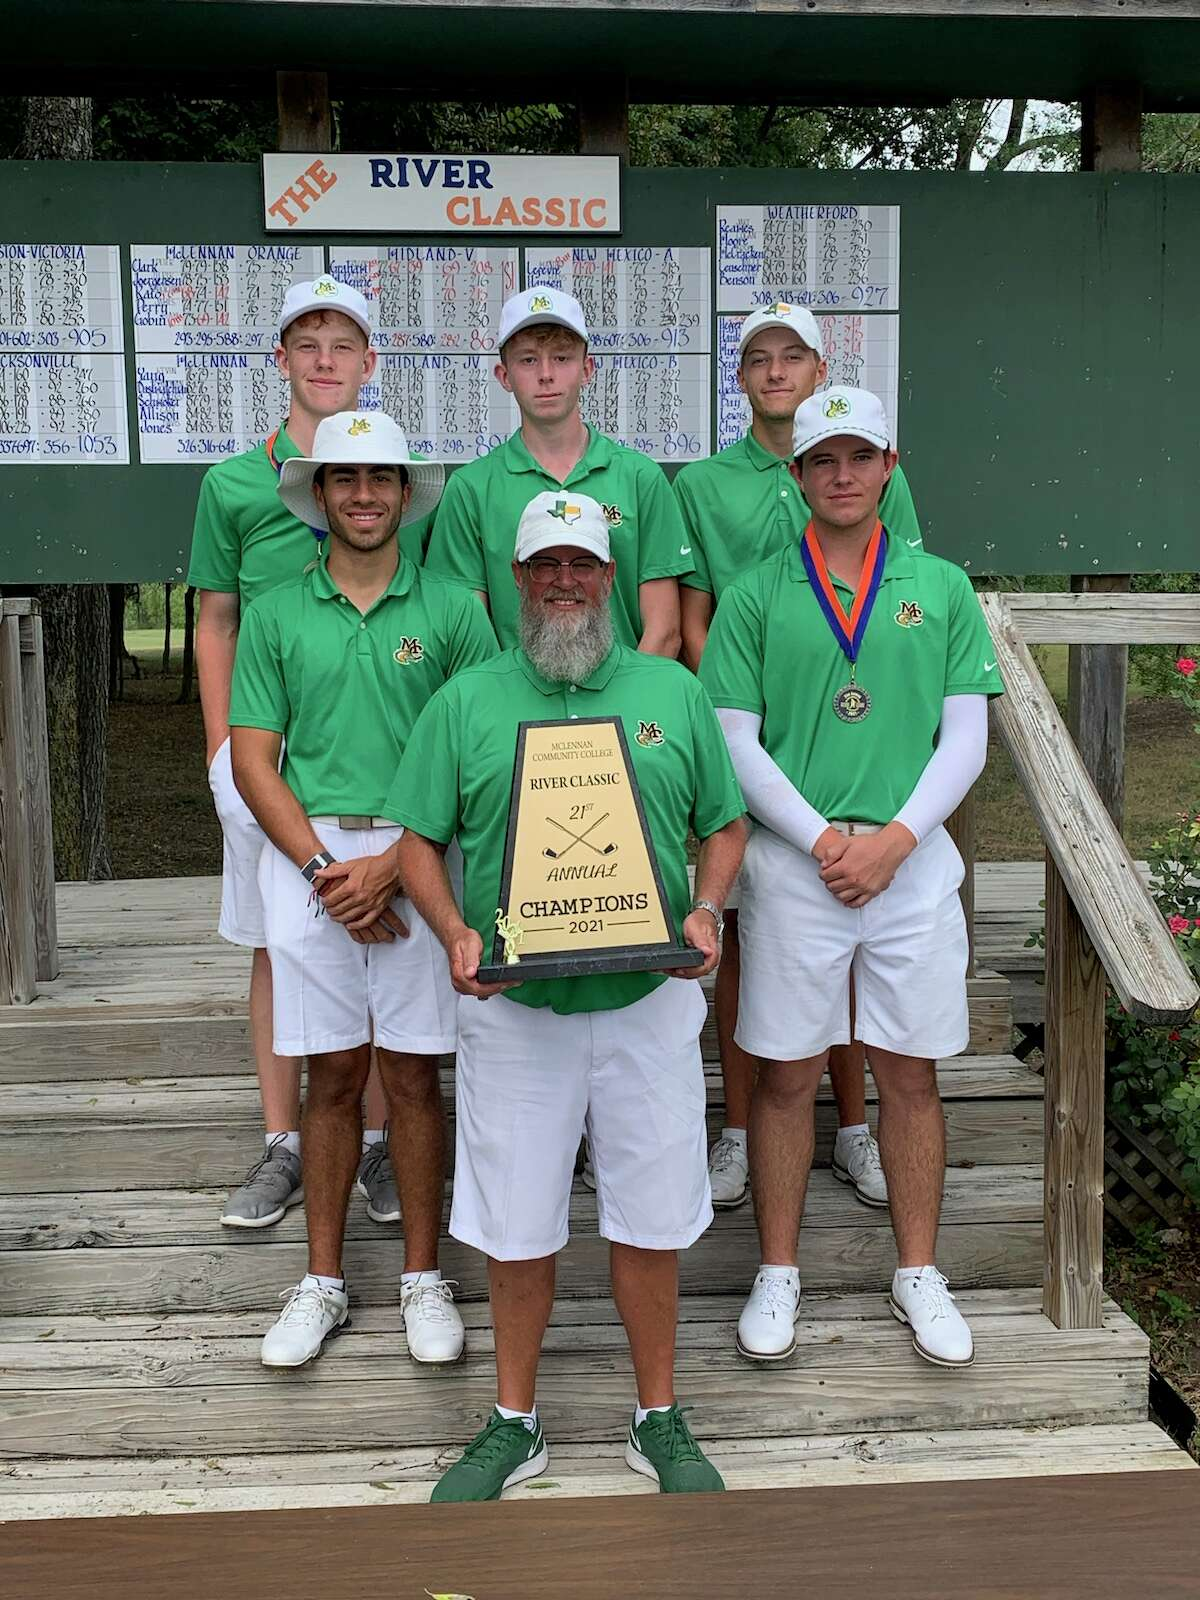 Midland College golf coach Walt Williams and the Midland College golf team pose with the championship trophy after winning the Bosque River Classic on Tuesday in Waco.